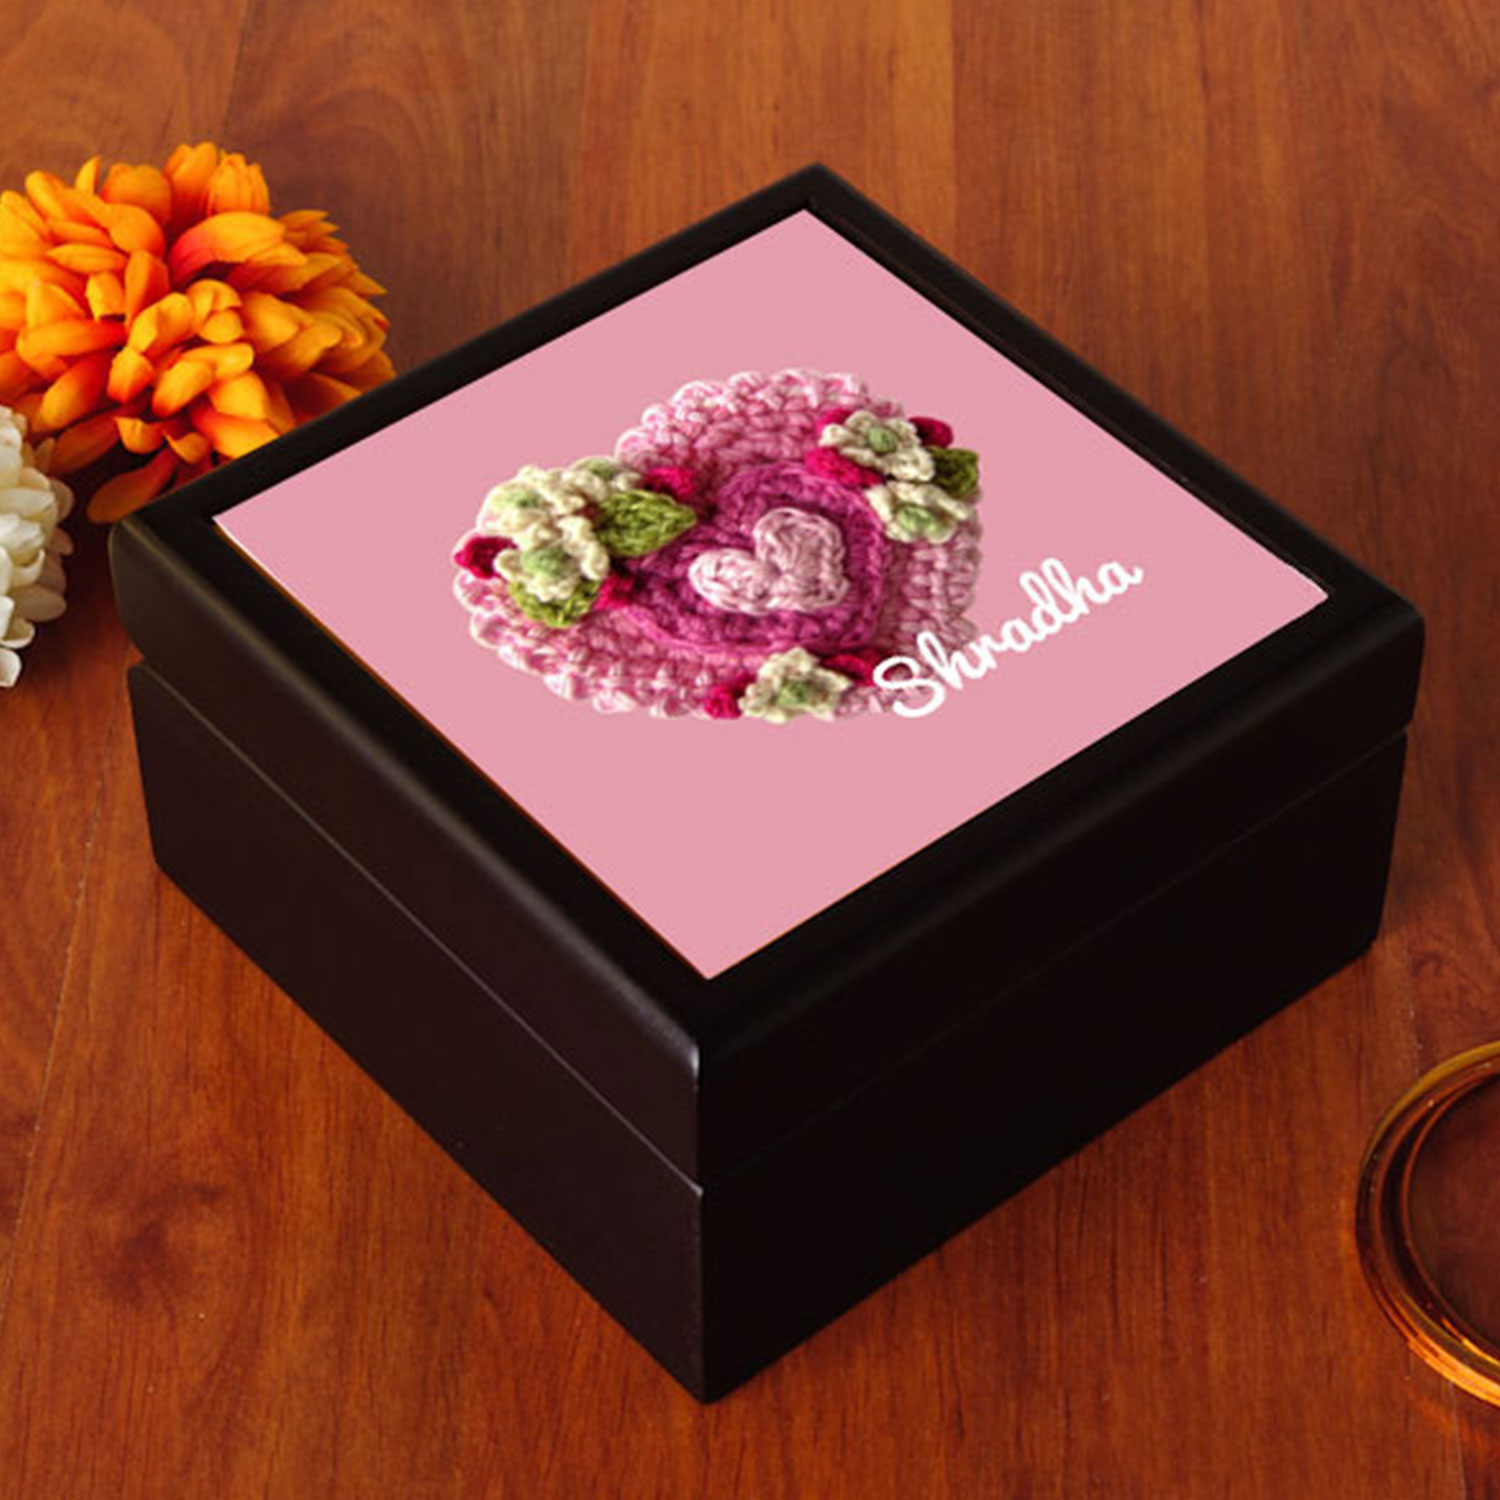 Floral Heart Jewelry Box